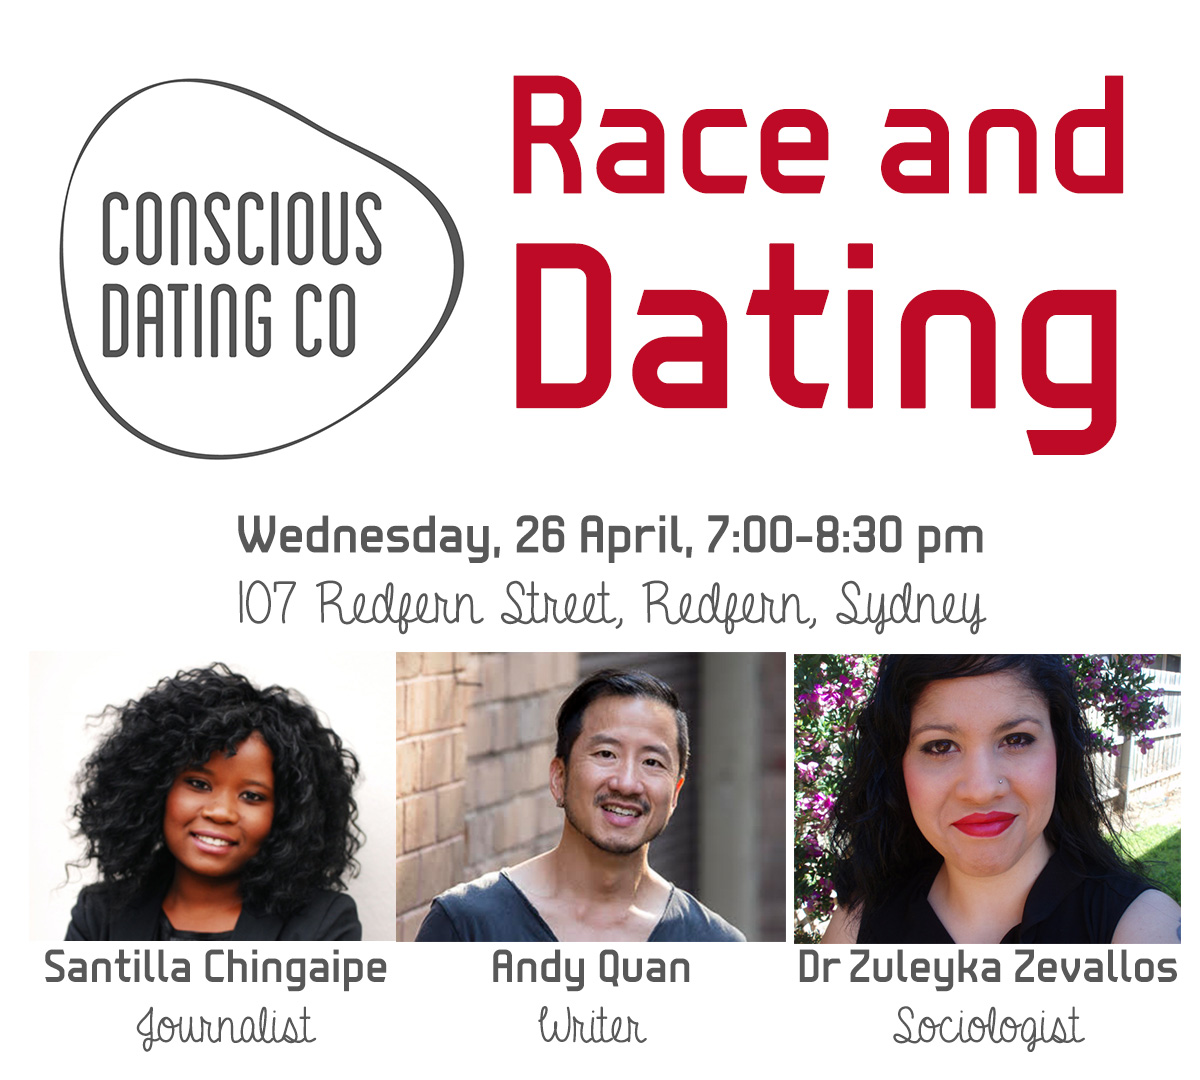 Conscious Dating - Race and Dating